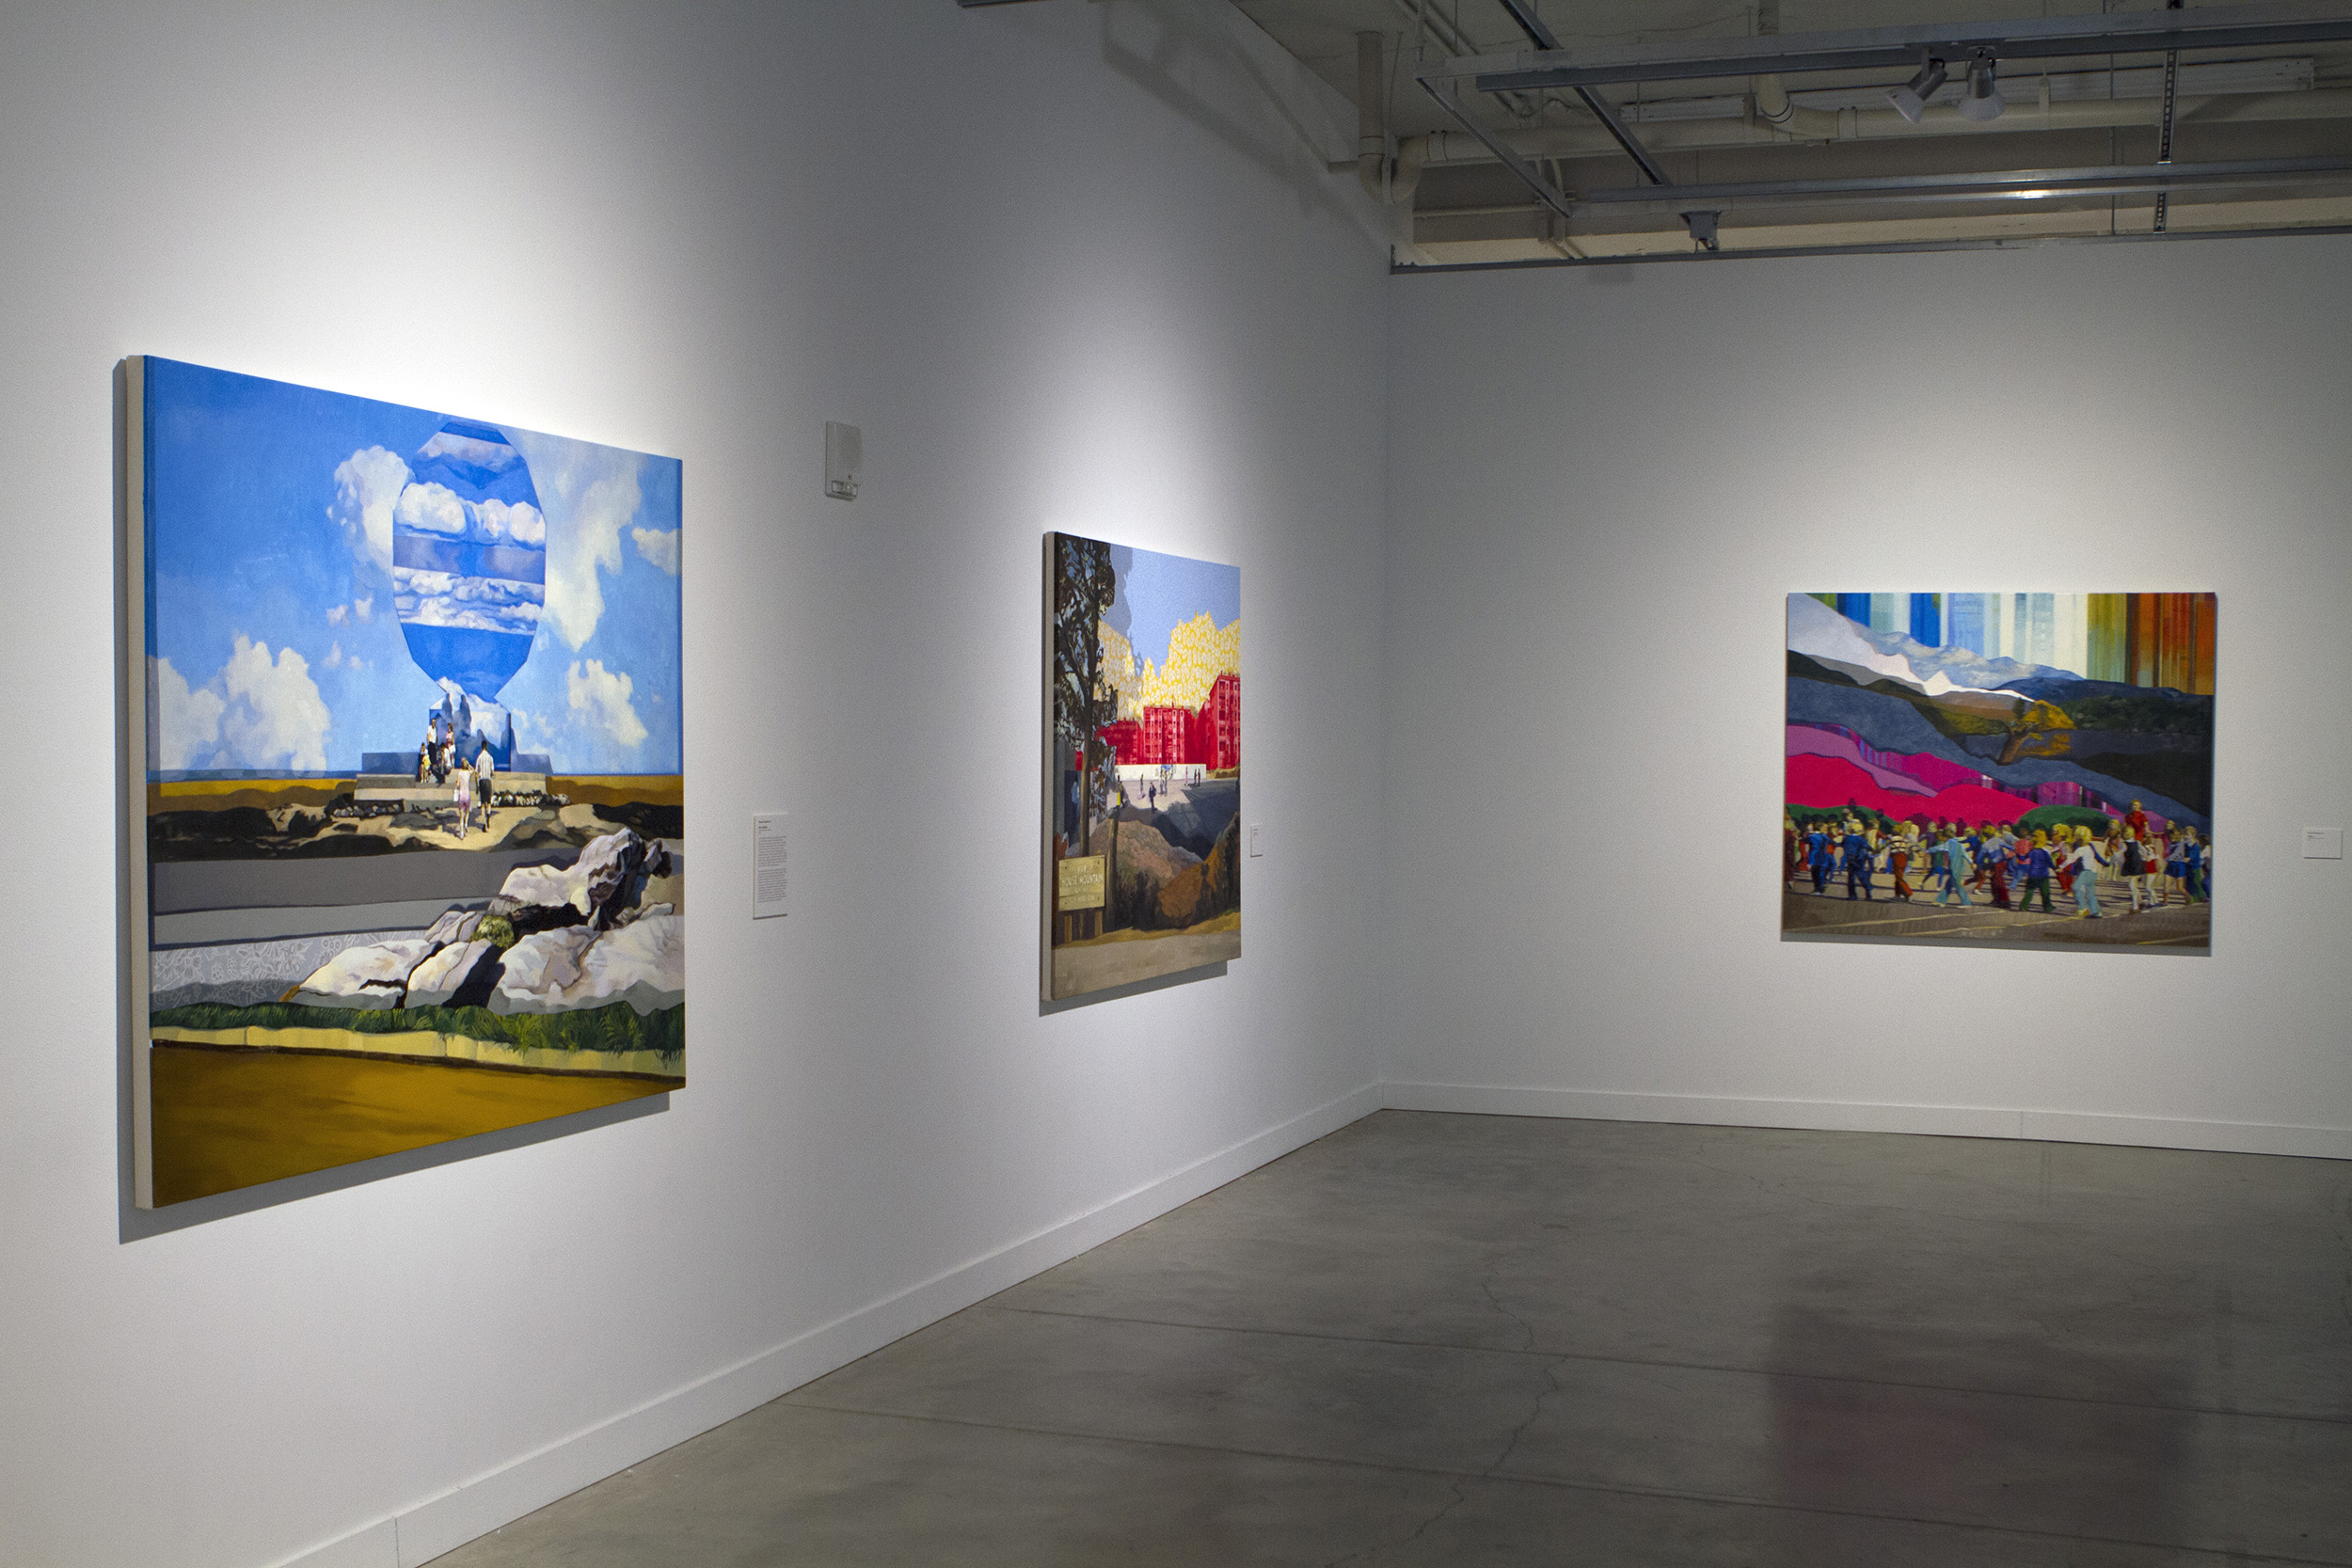 Installation View, Urban Arts Space